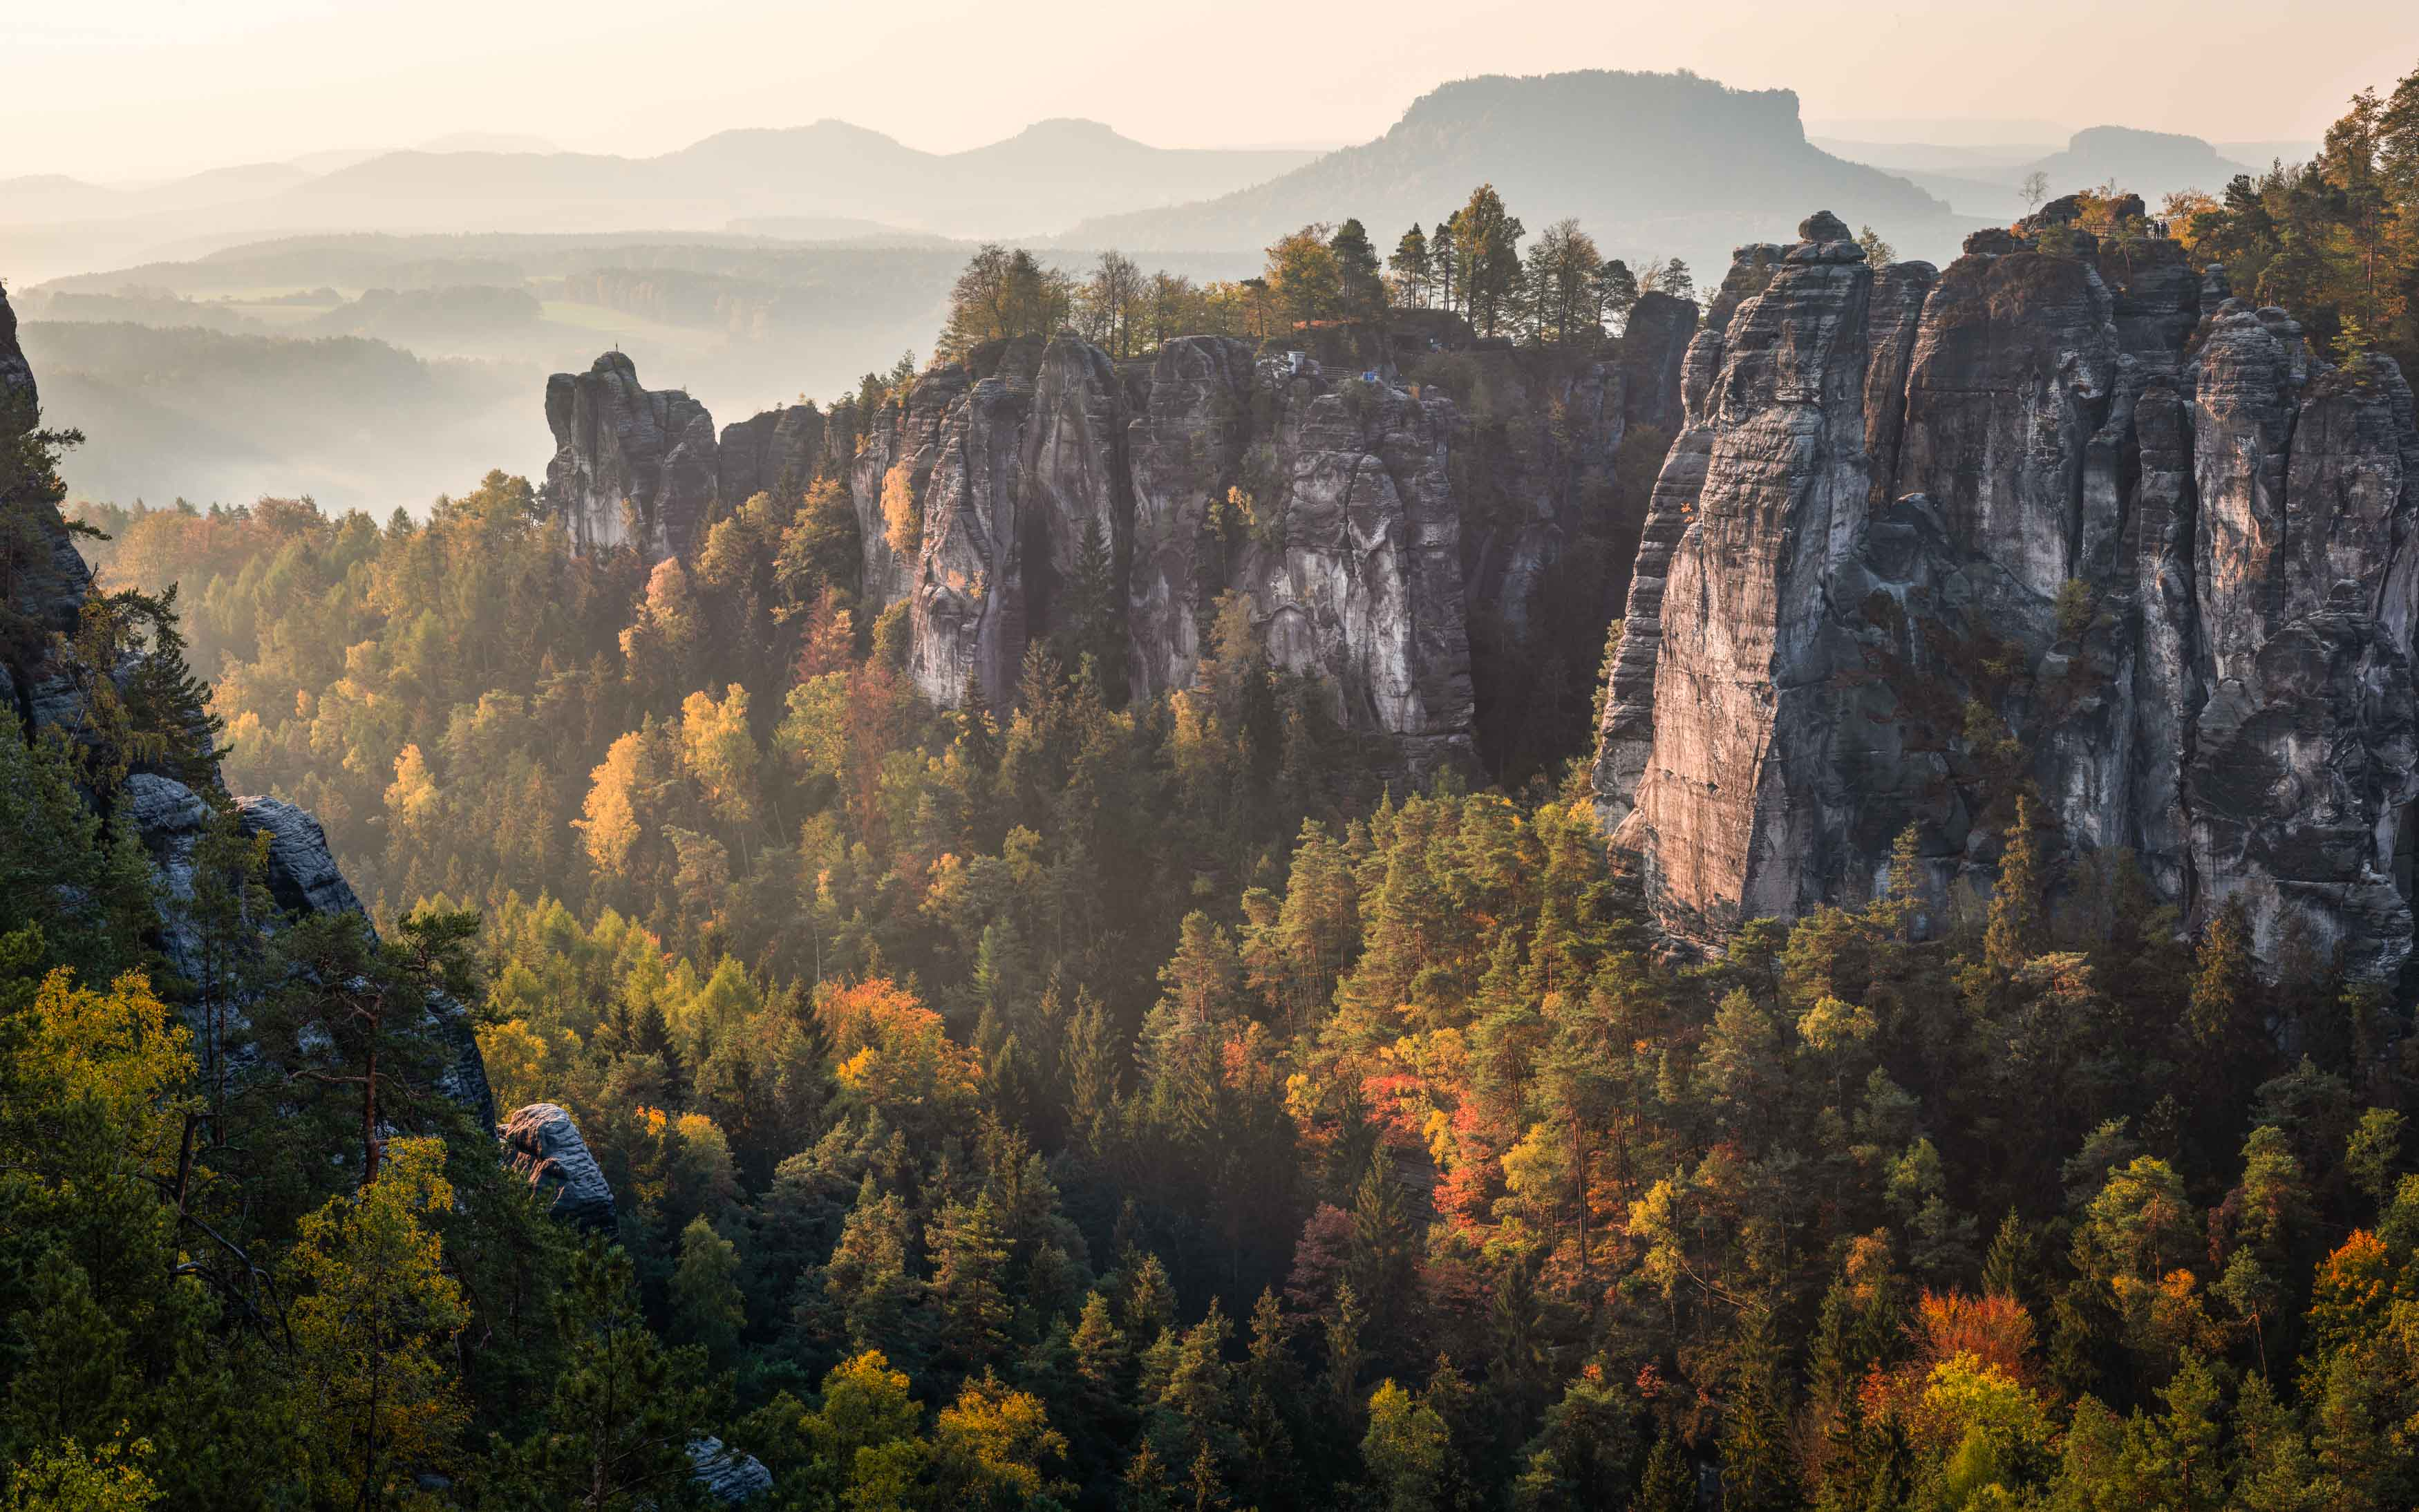 Saxon Switzerland National Park – Landscape Photography in Autumn